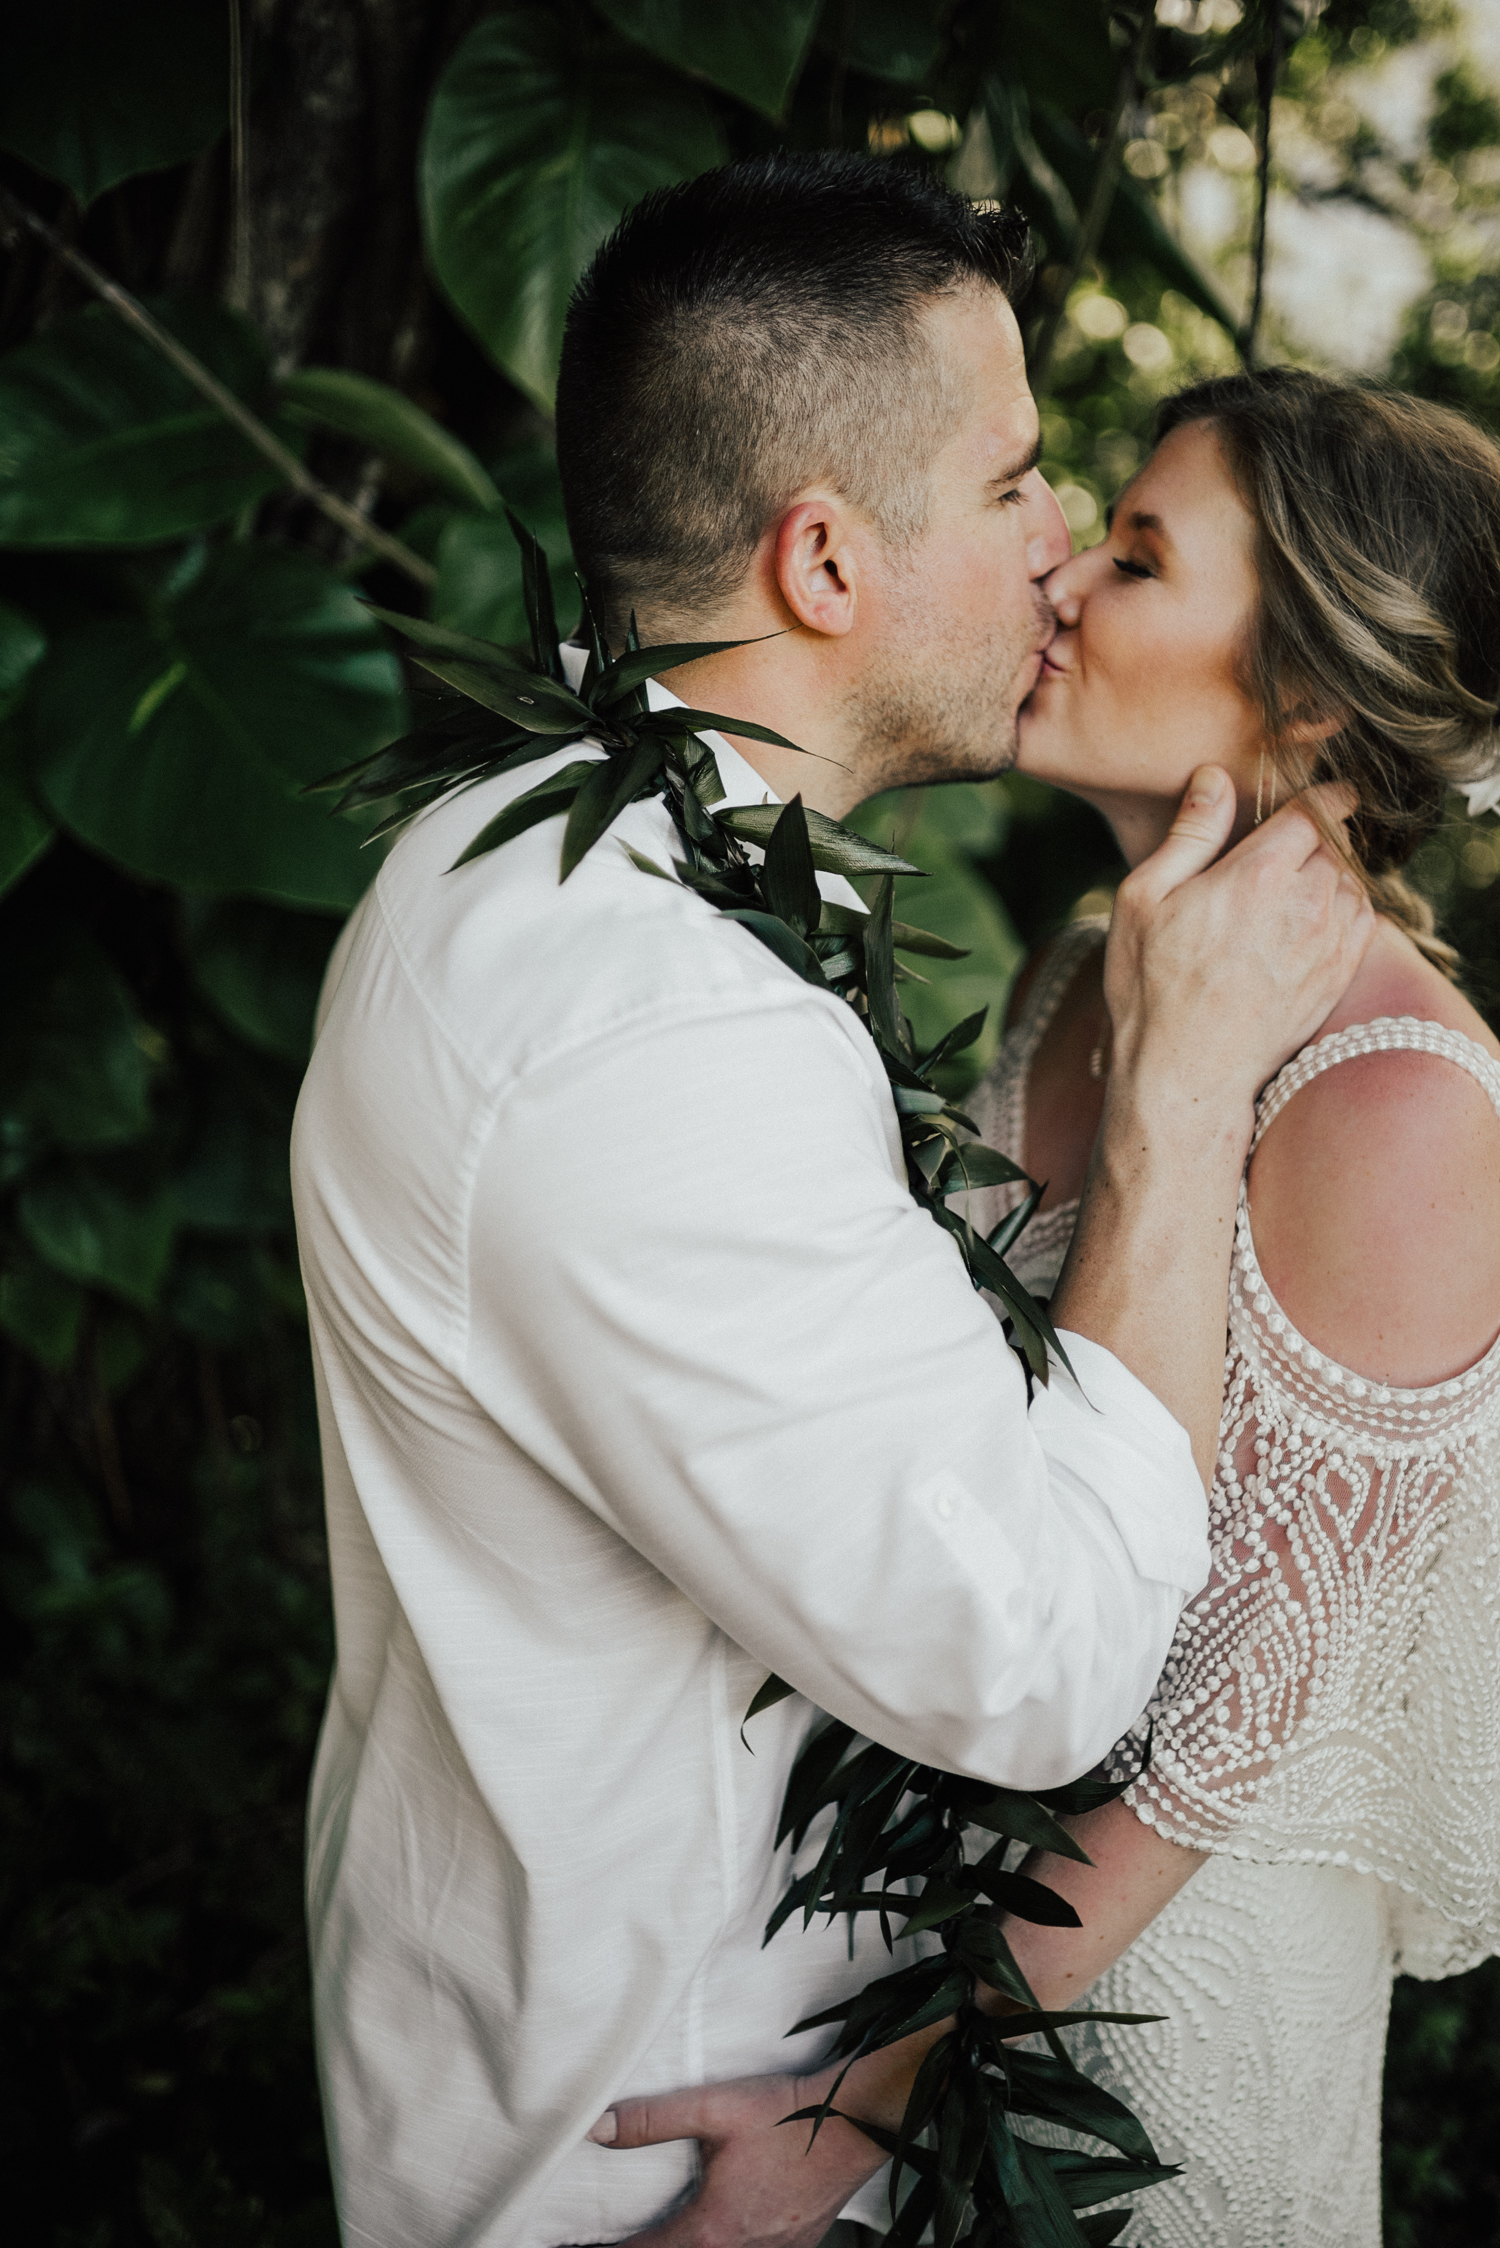 Kauai-elopement-photographer-58.jpg